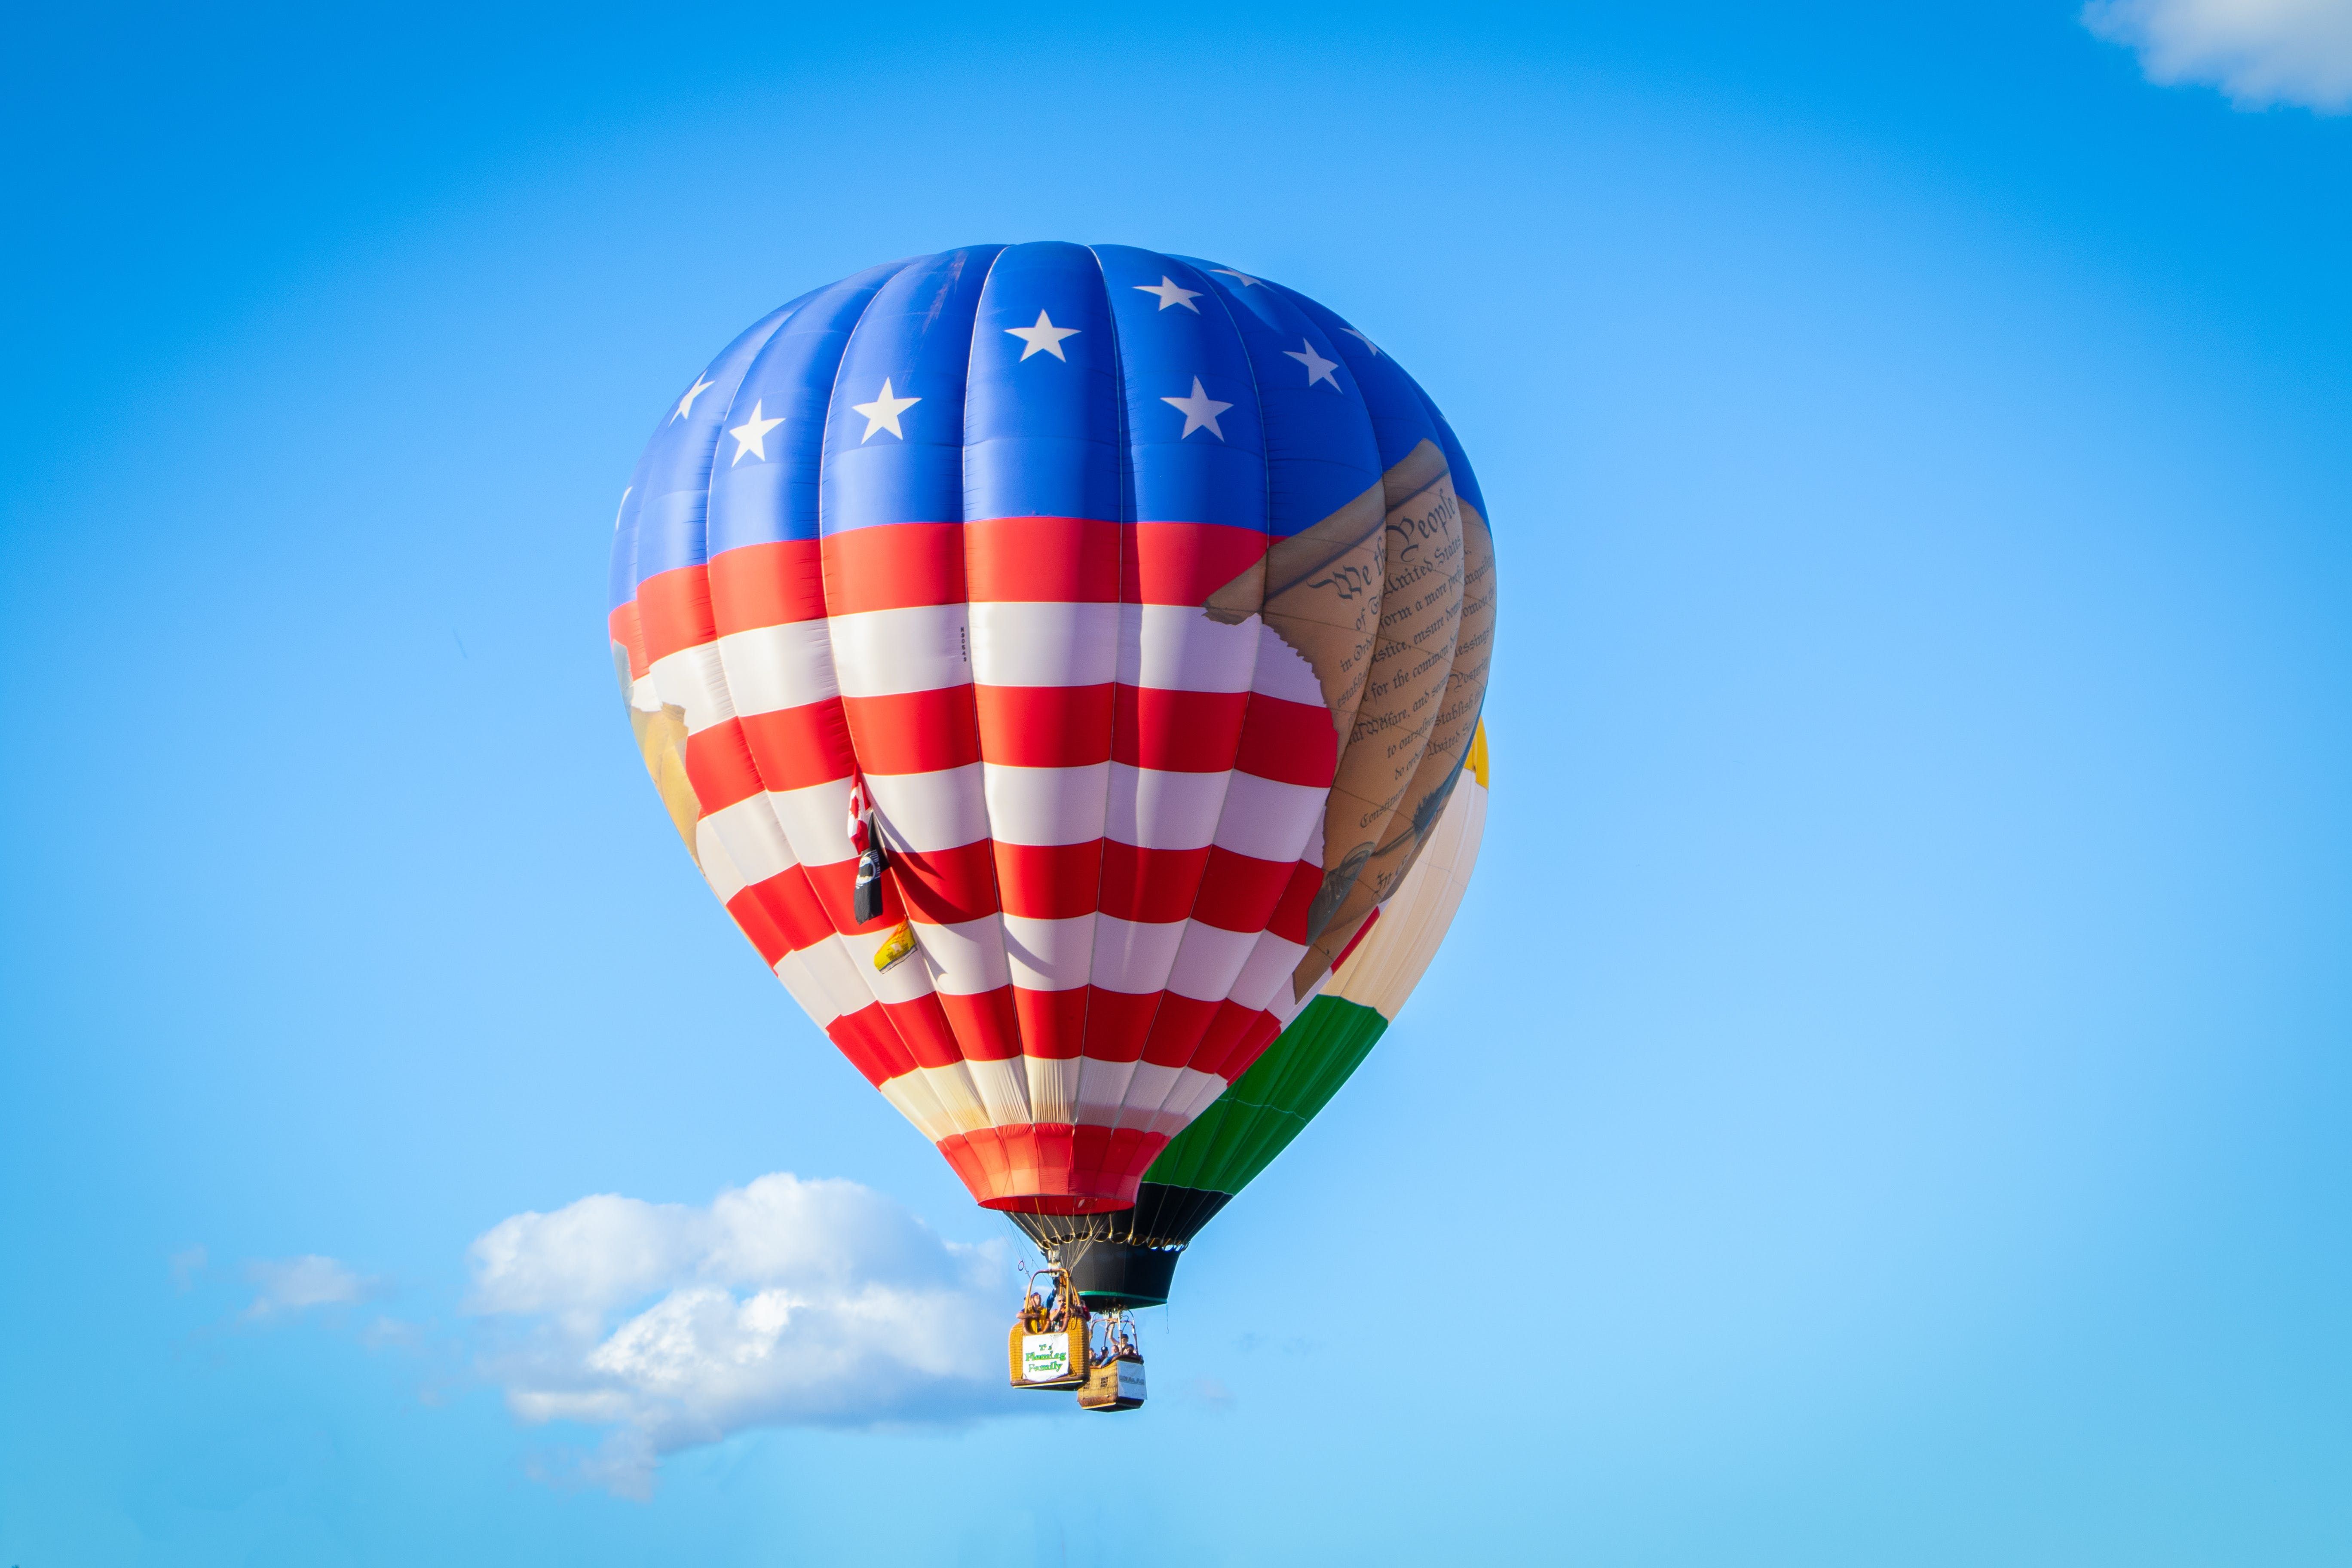 White, Red, and Blue Hot Air Balloon Flying